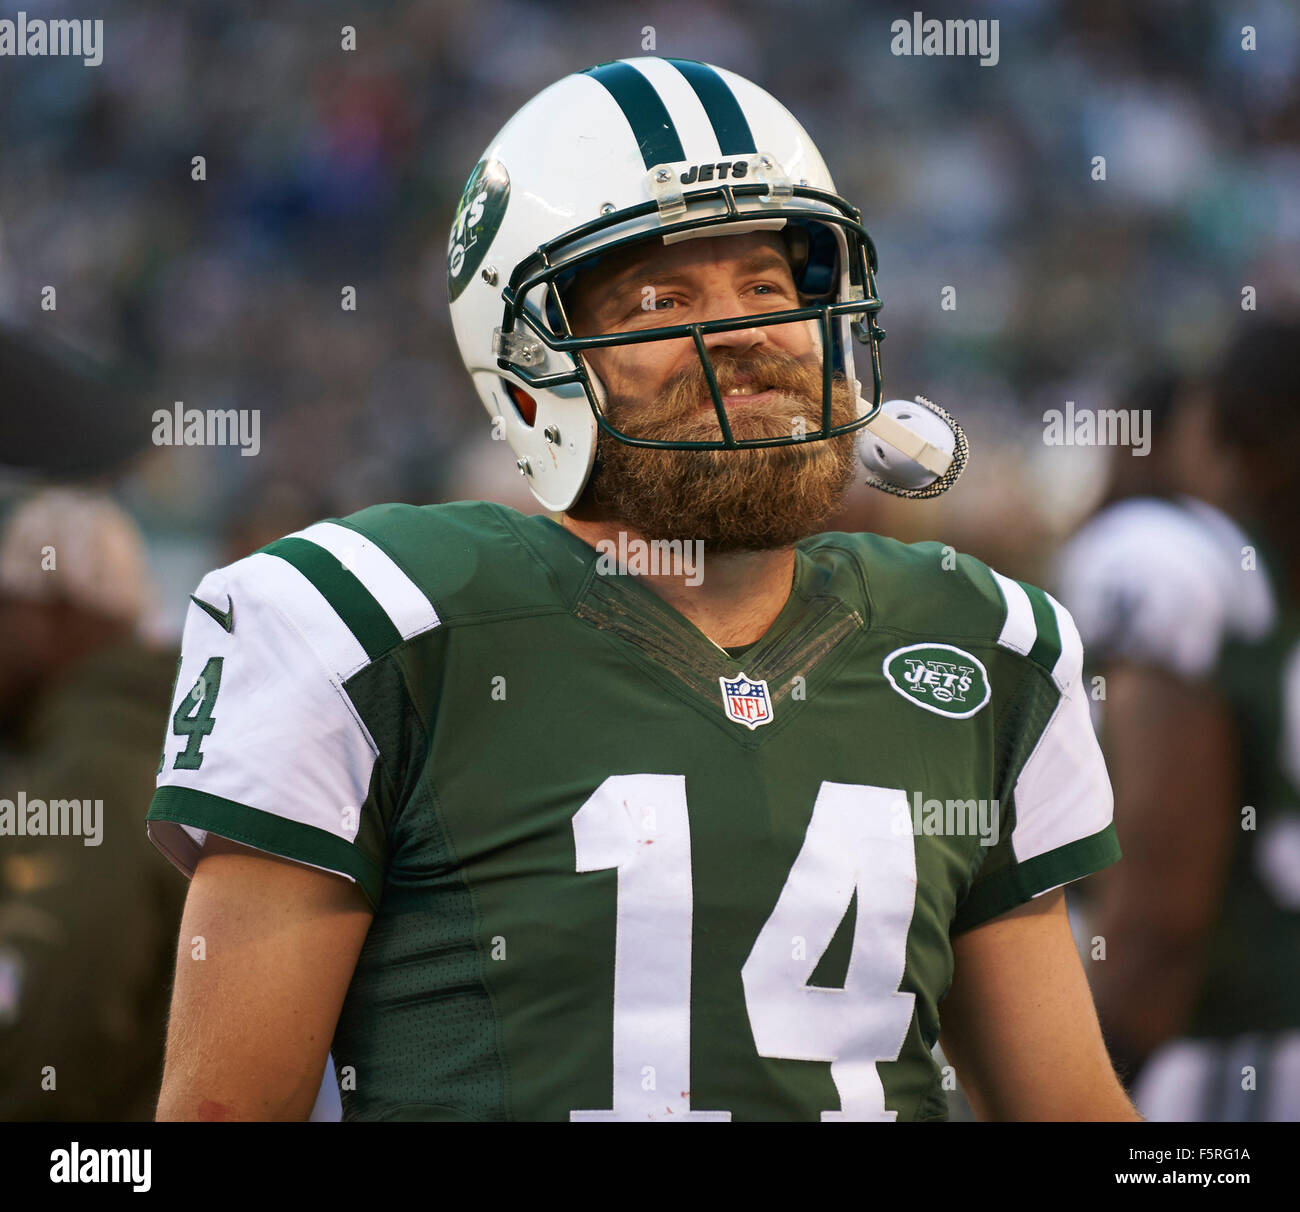 East Jersey Alamy Jets' 8th Usa Stock 89642598 Photo New - Quarterback 2015 Rutherford Nov beaabaccffddb|The Sports Guys